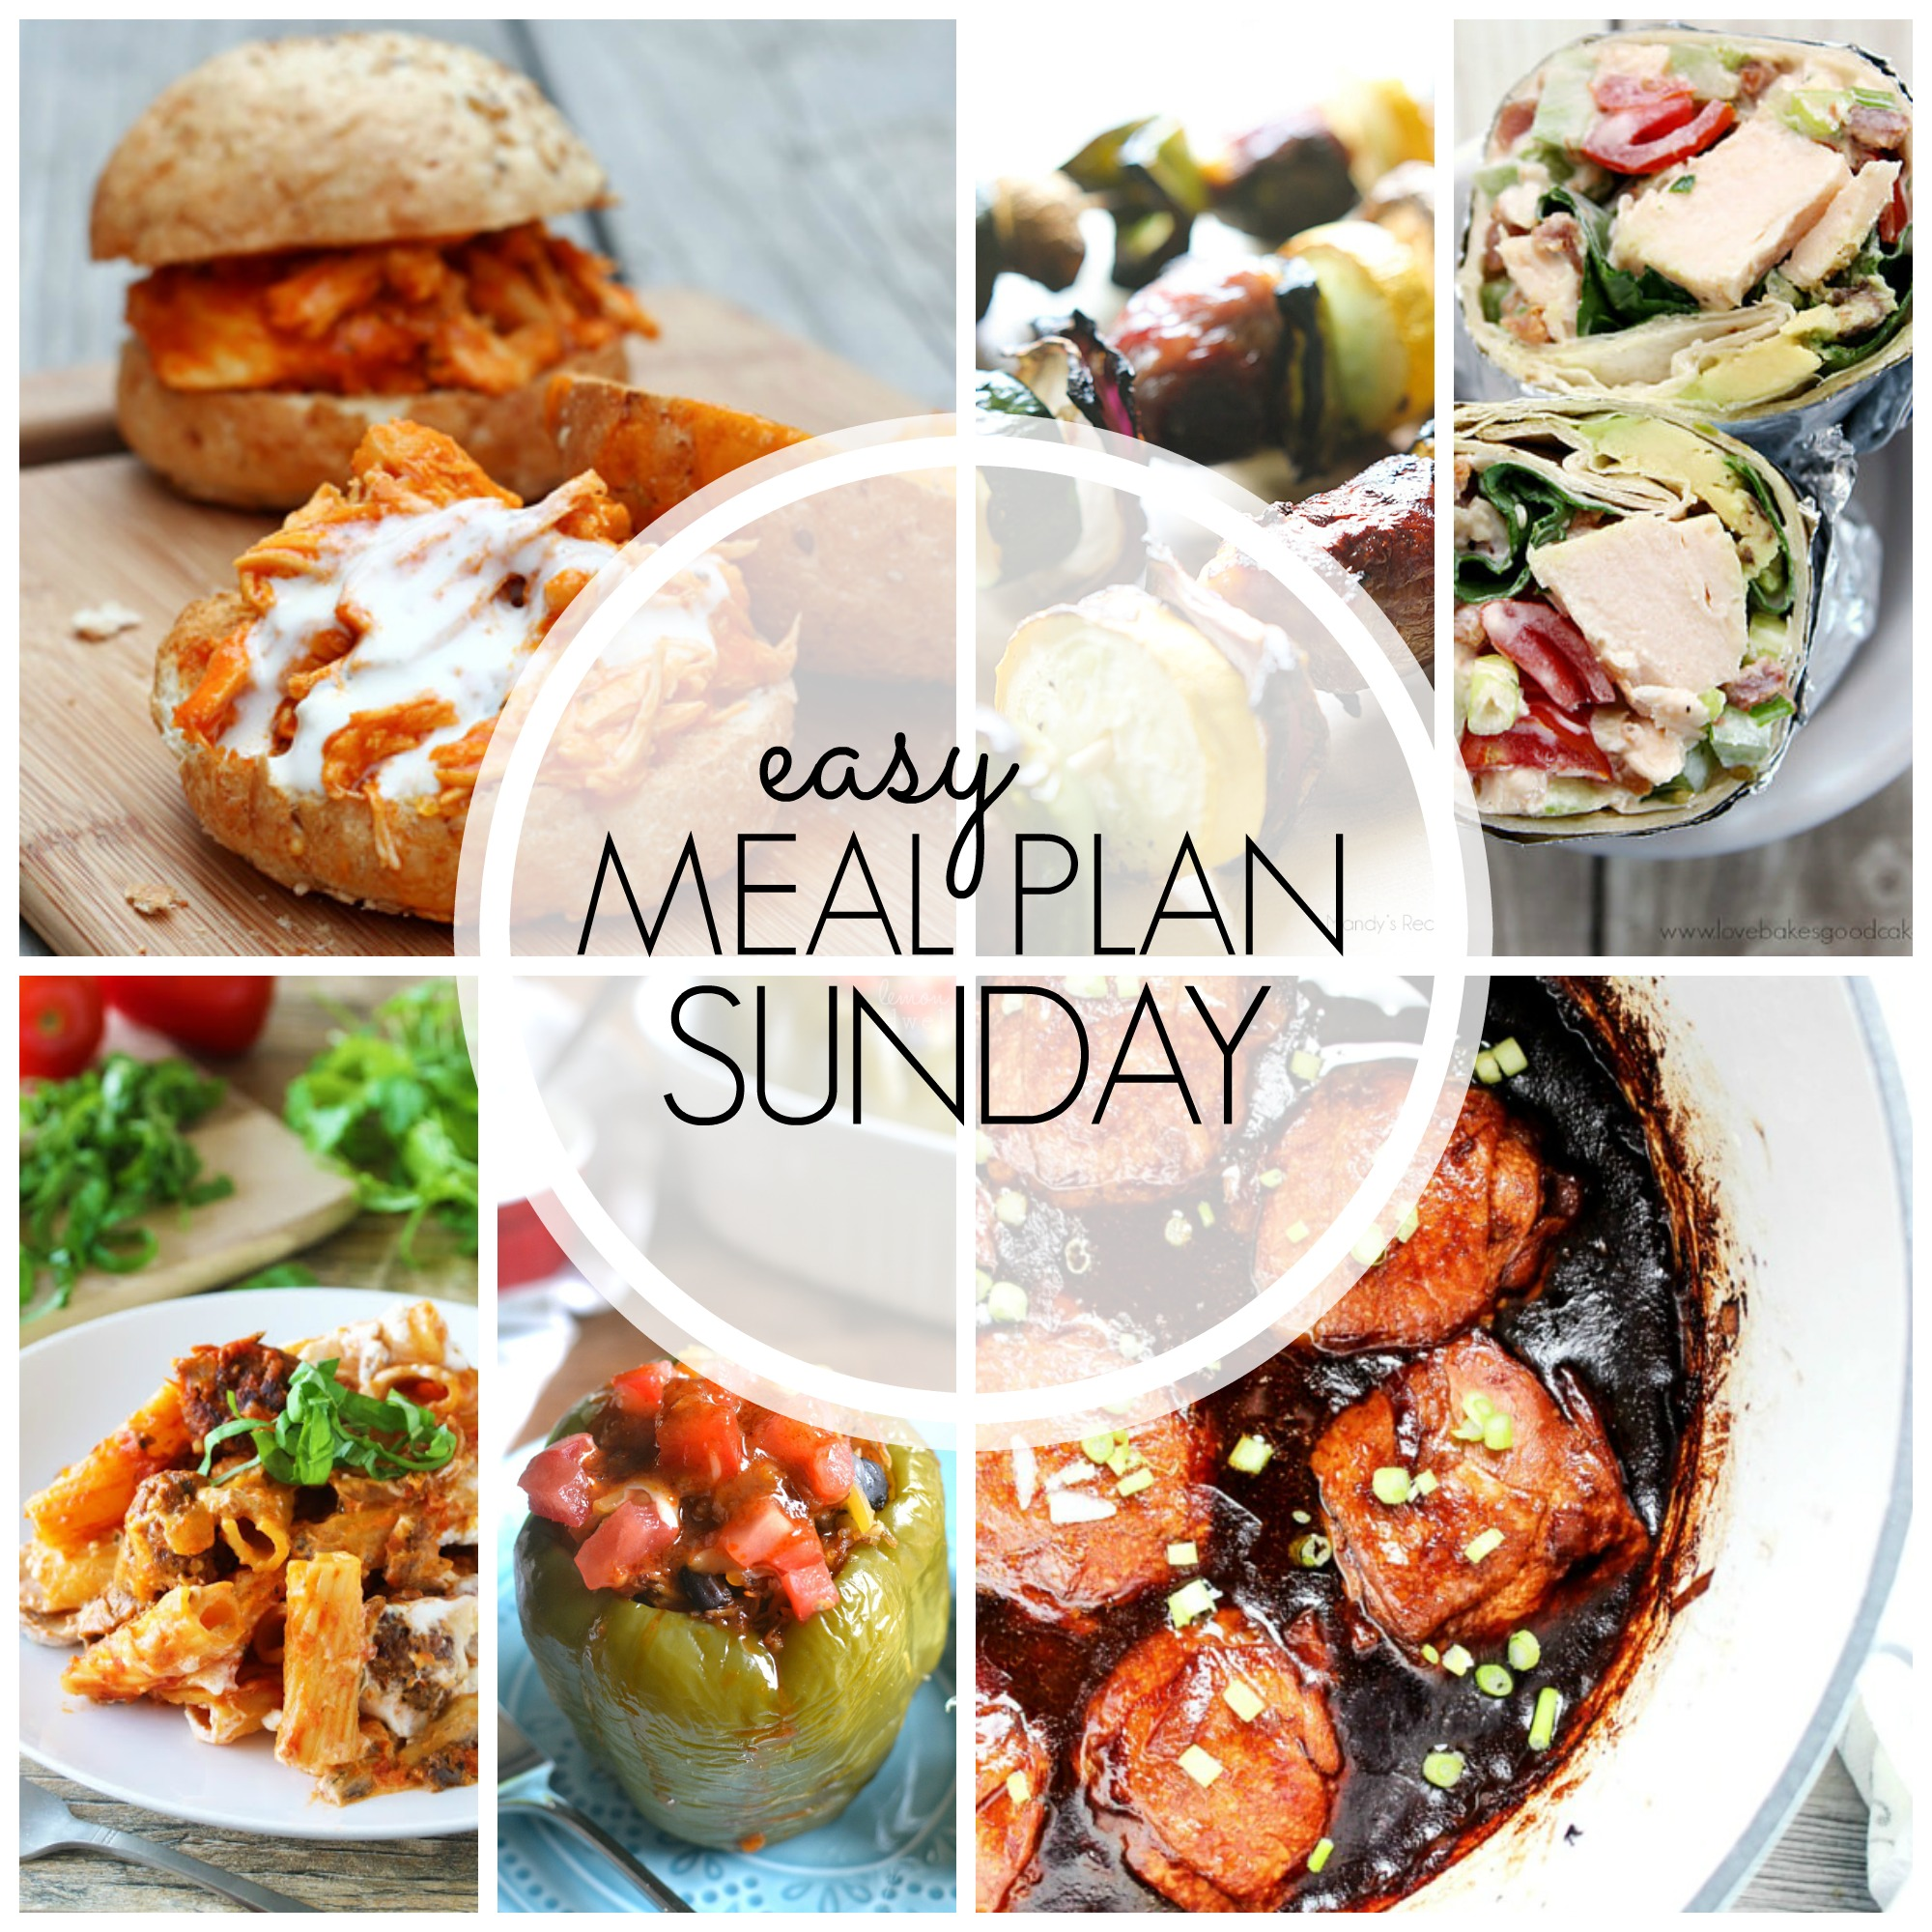 EASY MEAL PLAN – Week 49 - 7 delicious dinners and 2 desserts!